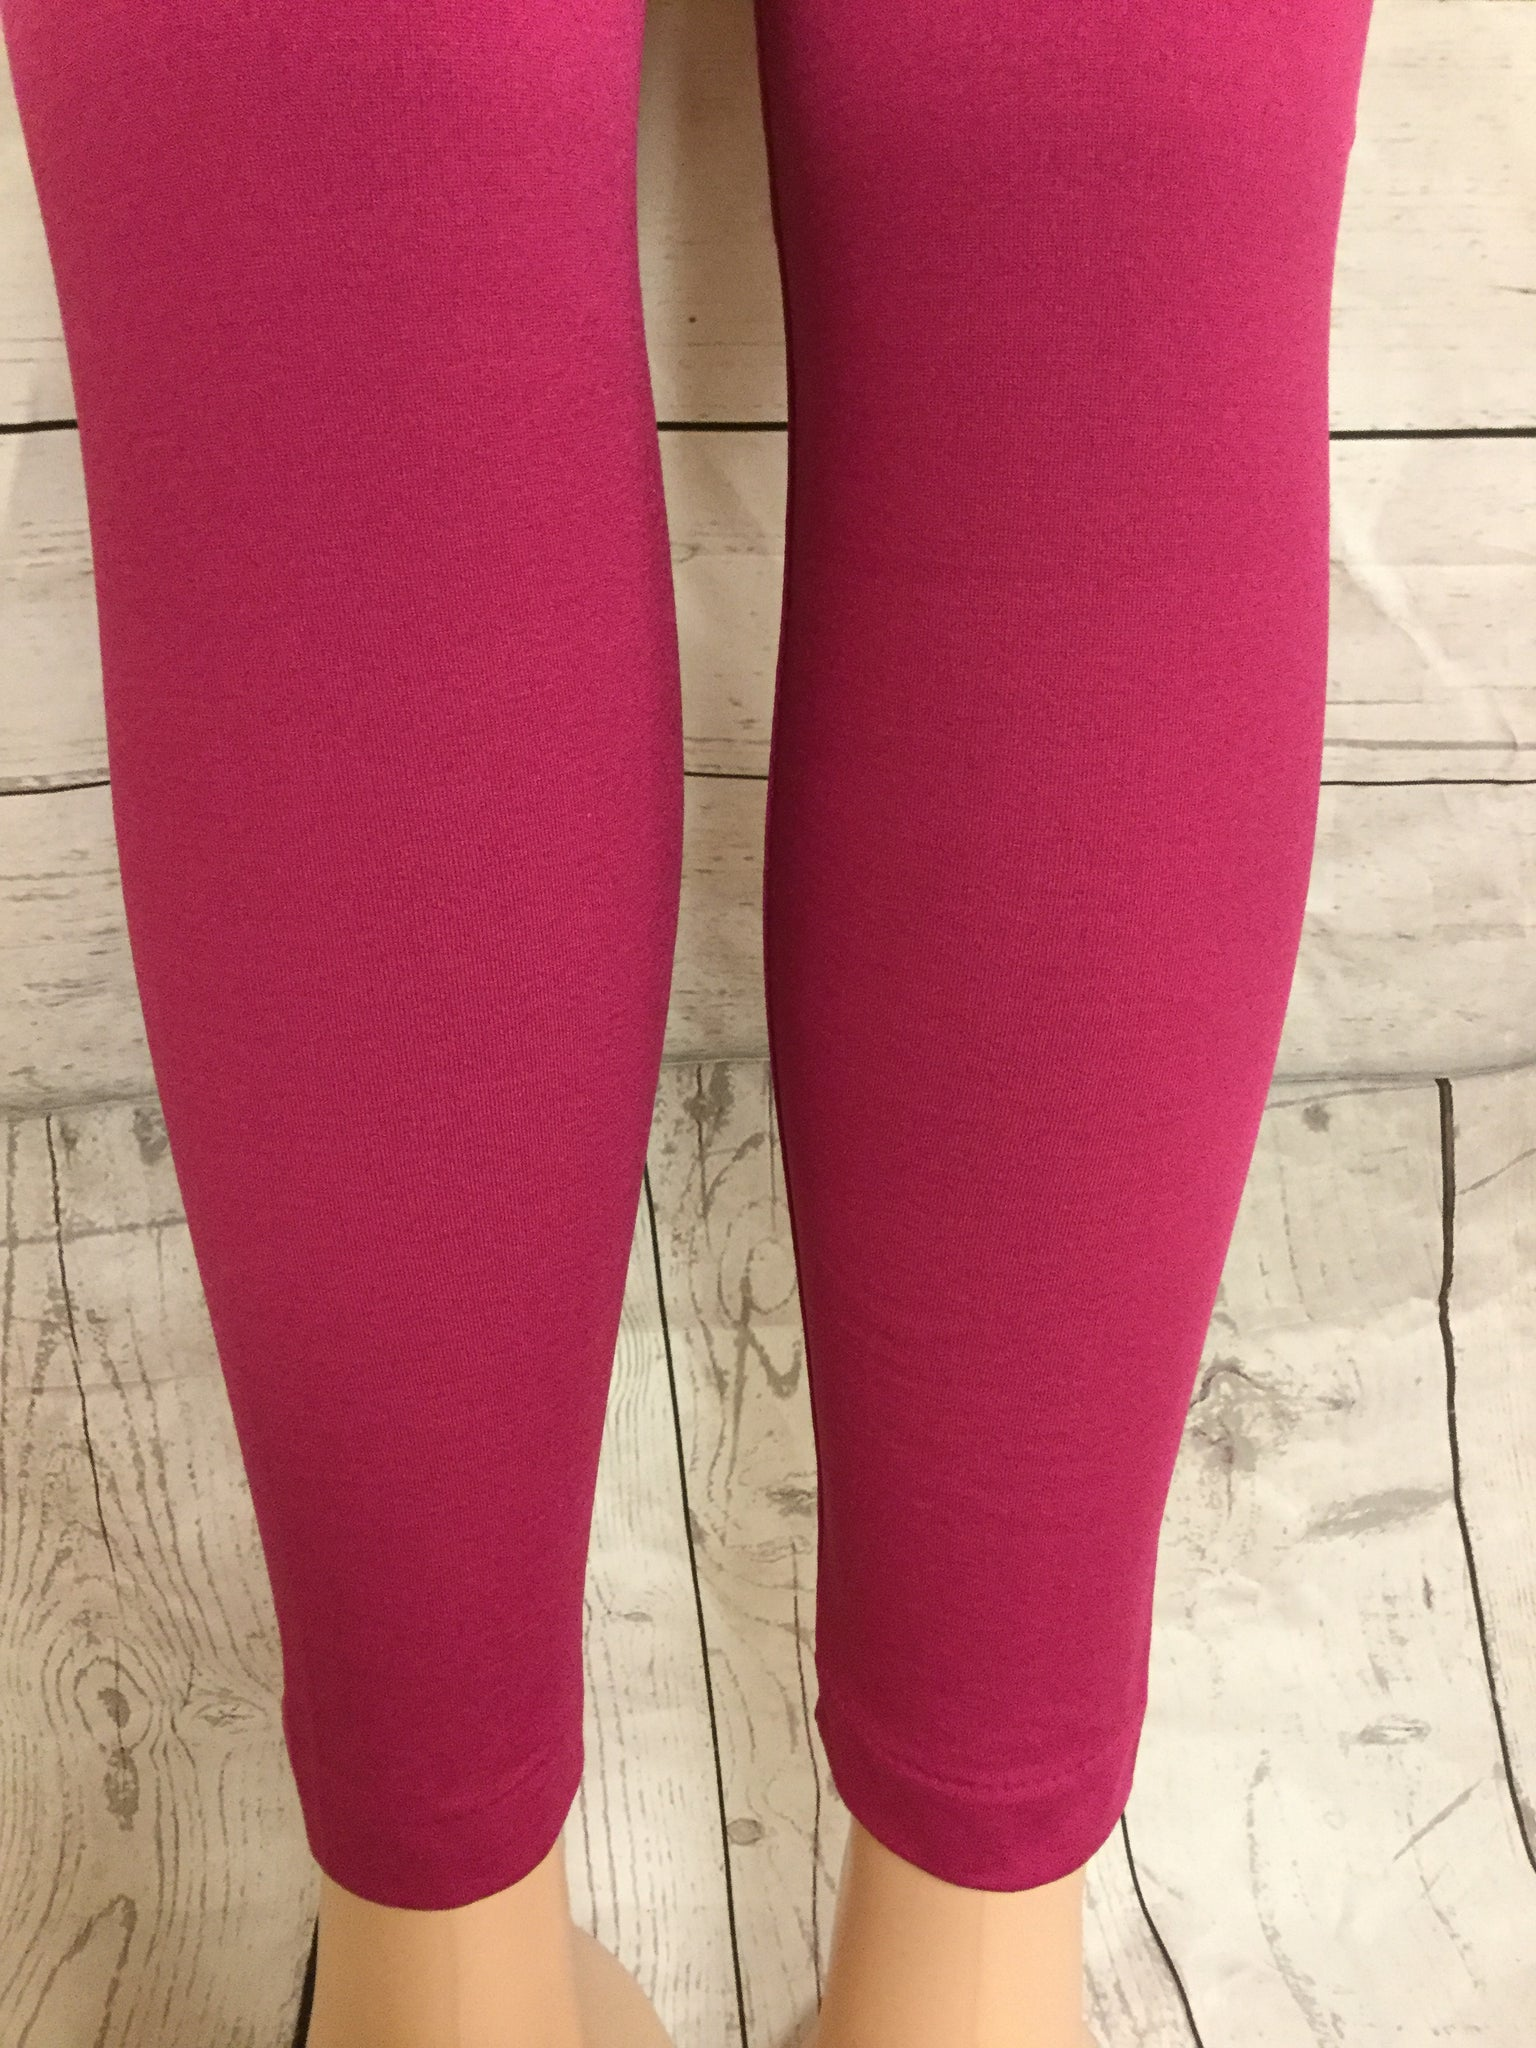 SOLID FUSHIA FLEECE LINED LEGGINGS